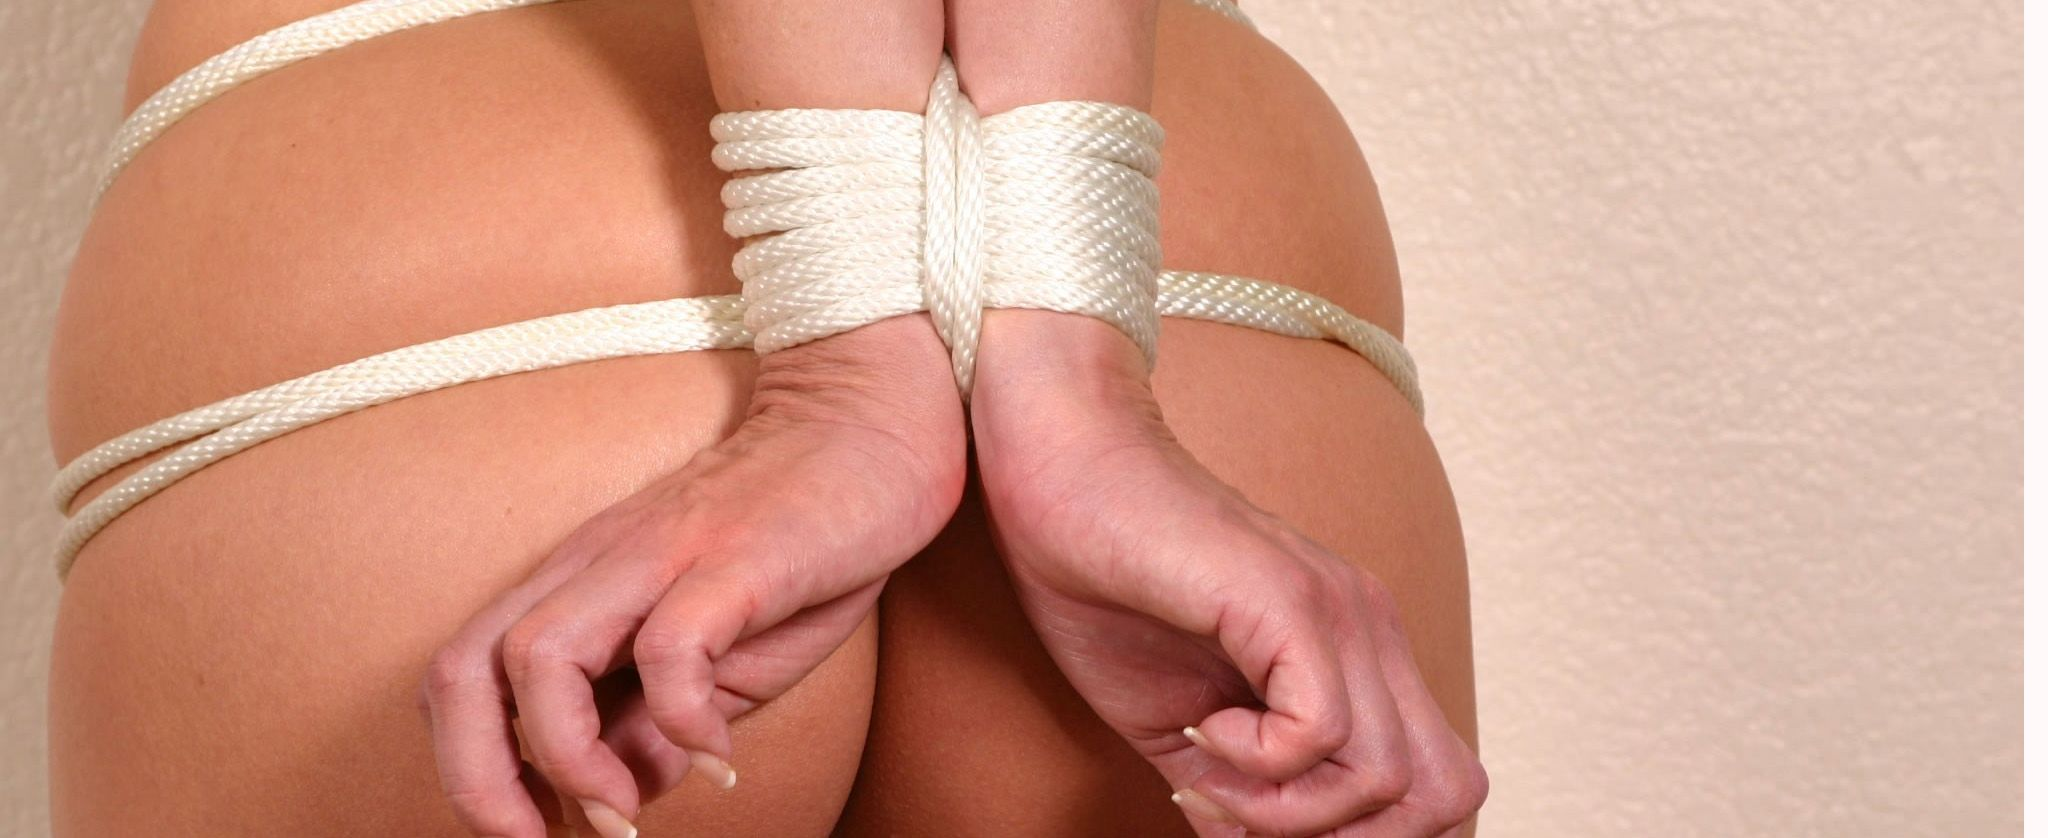 best of Techniques Wrist bondage rope